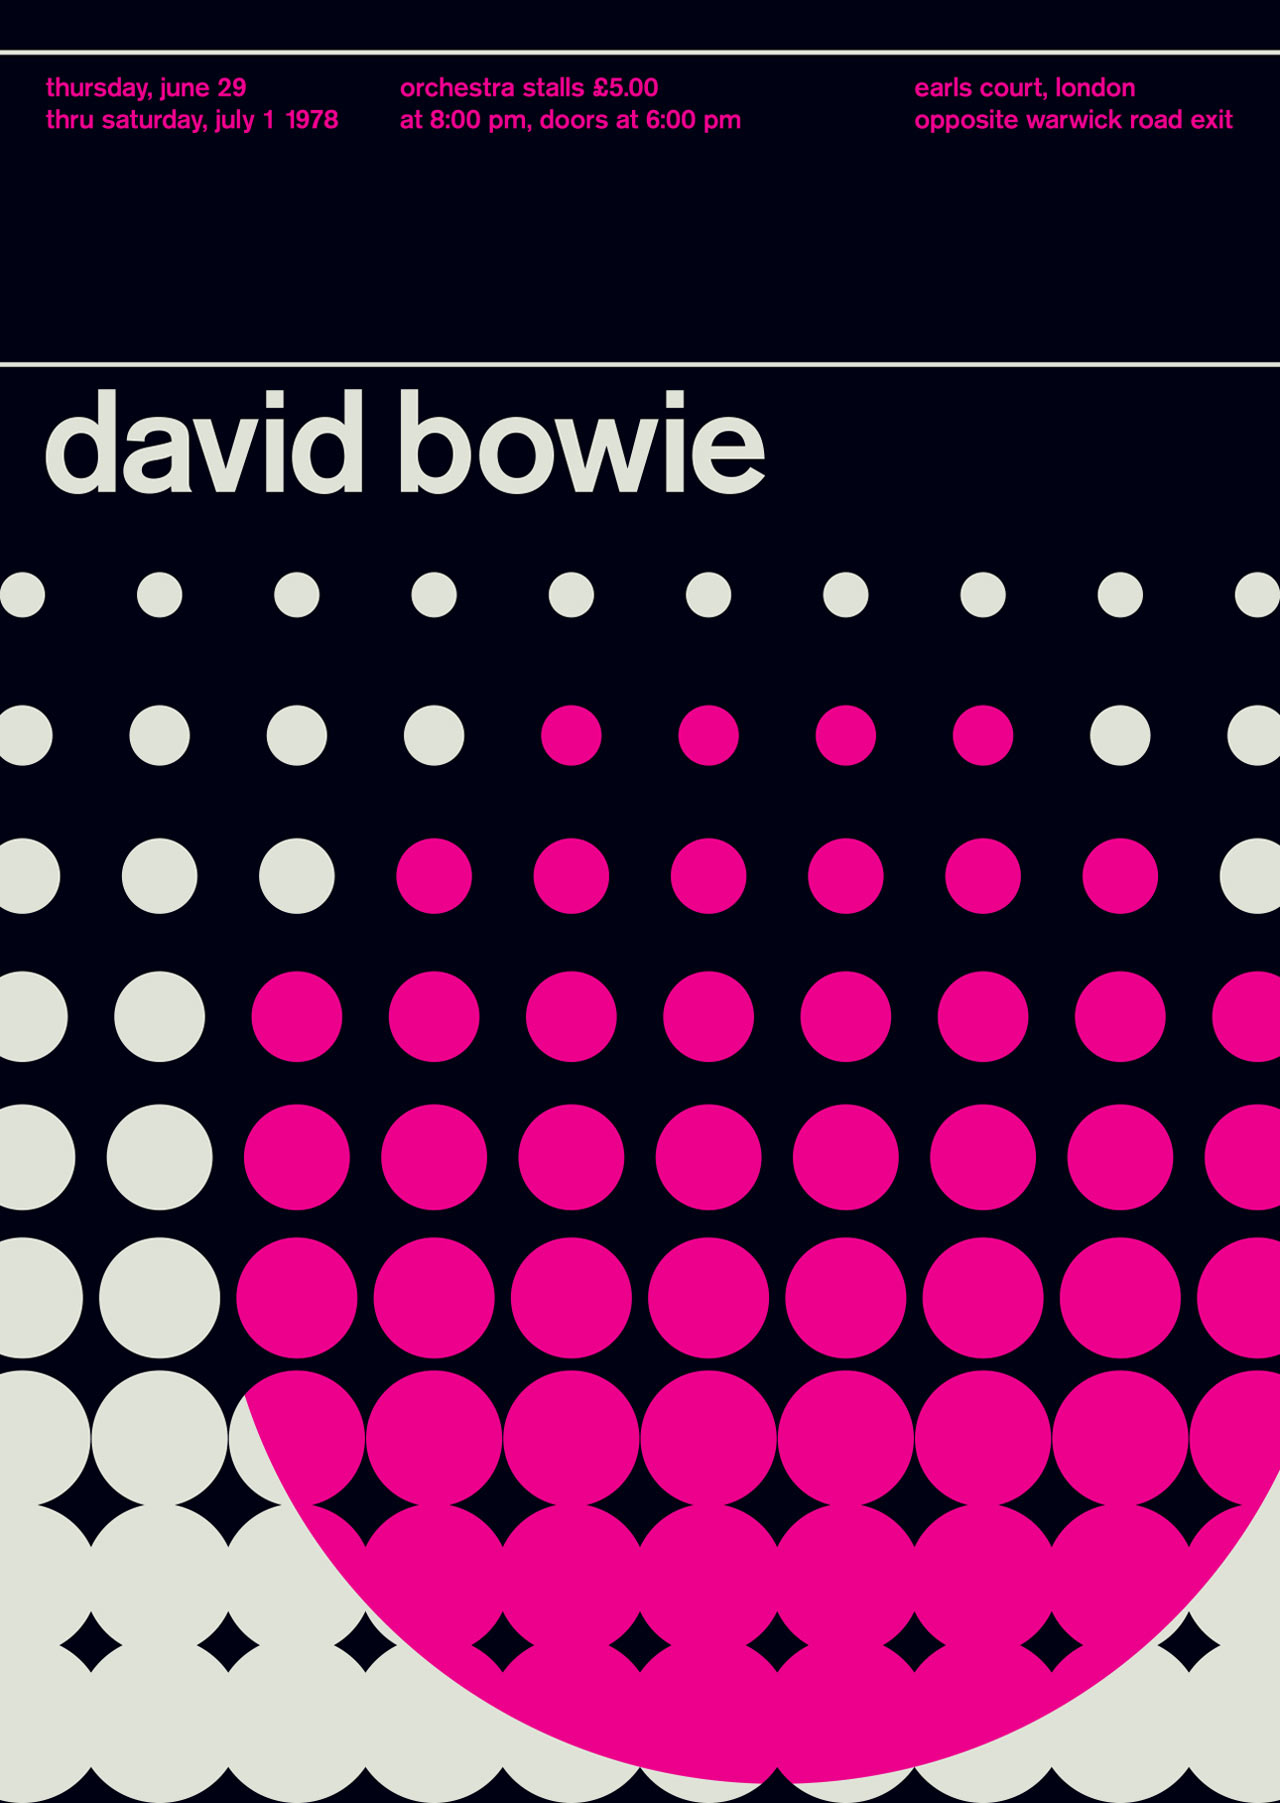 Swissted-Legends_Posters-2-david_bowie_legends_series